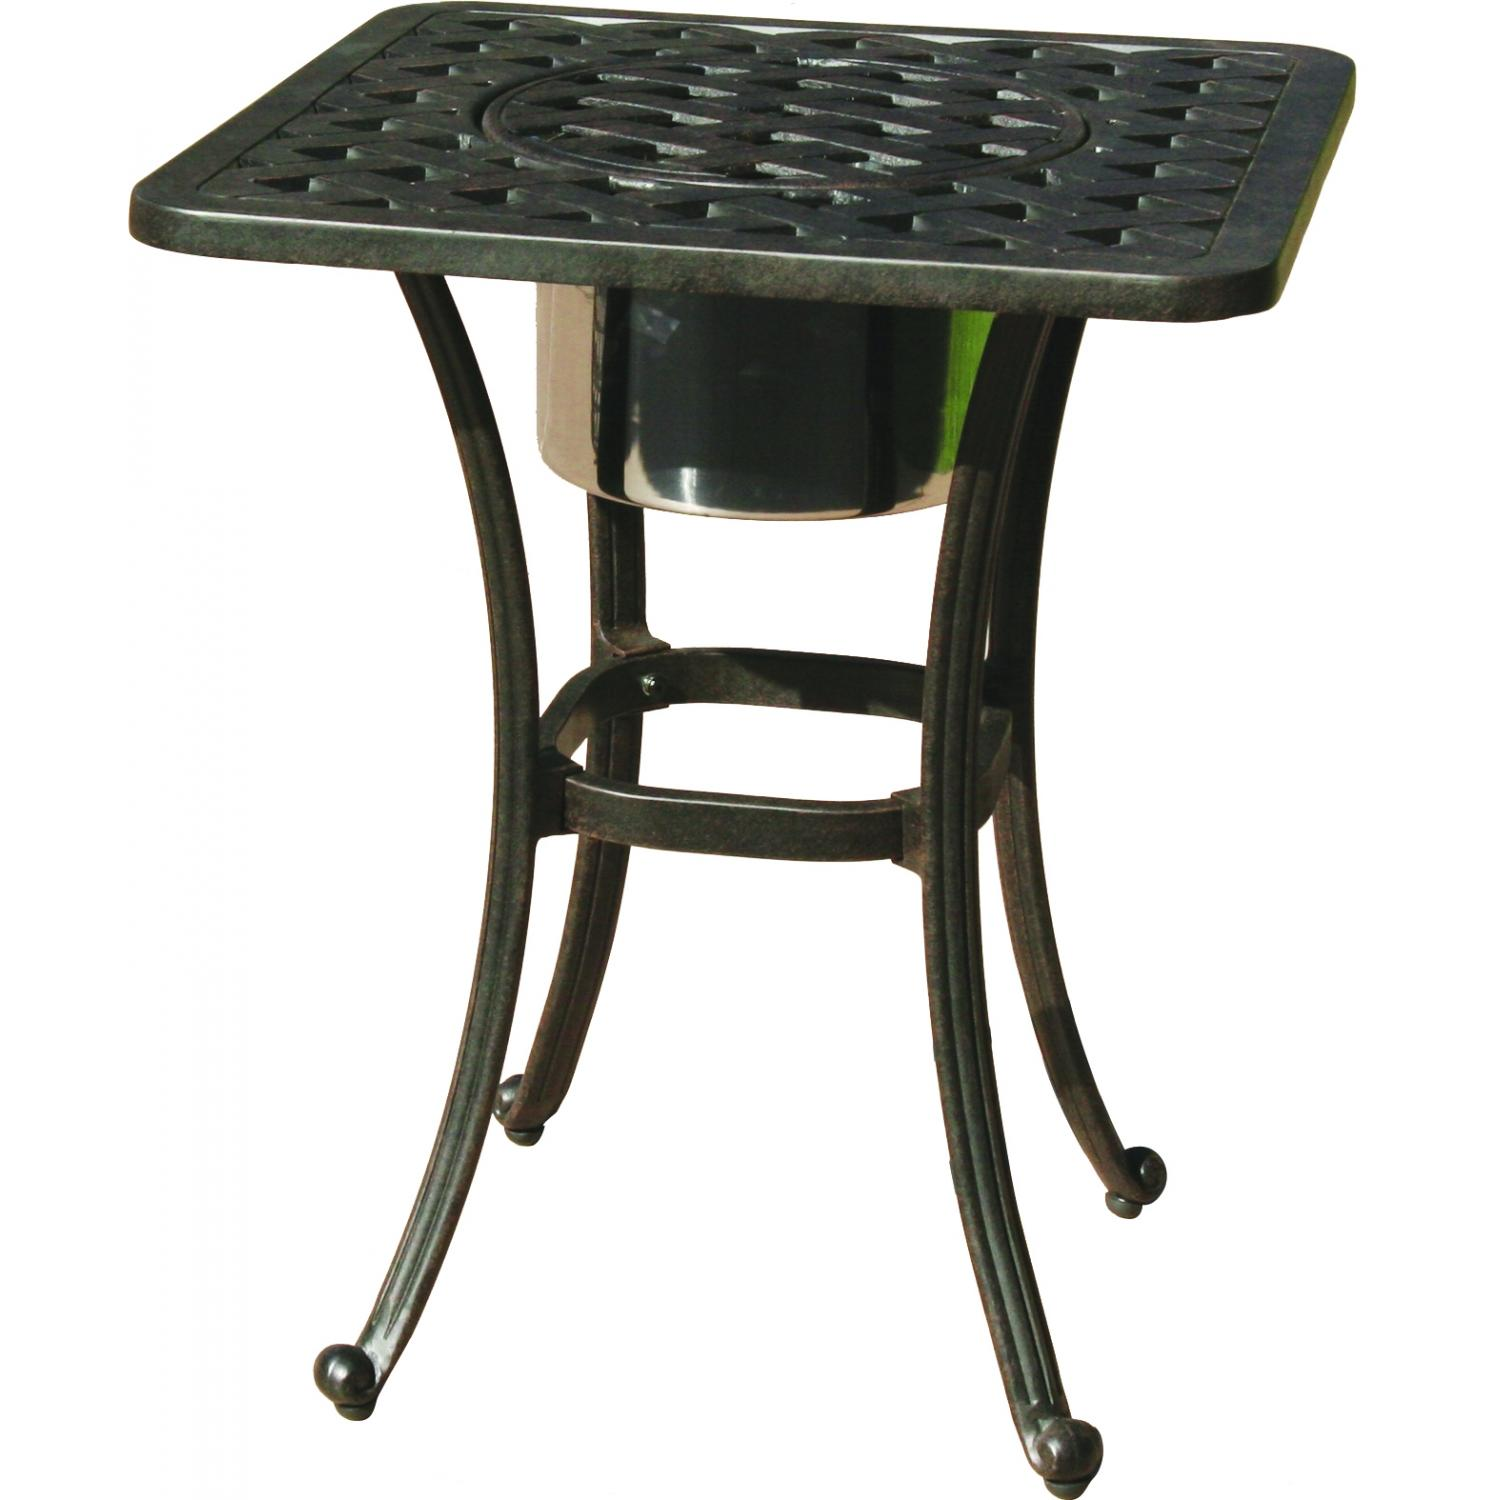 darlee series cast aluminum patio end table with ice bucket outdoor side insert square bbq guys dresser hardware stands for living room teak garden coffee black furniture battery